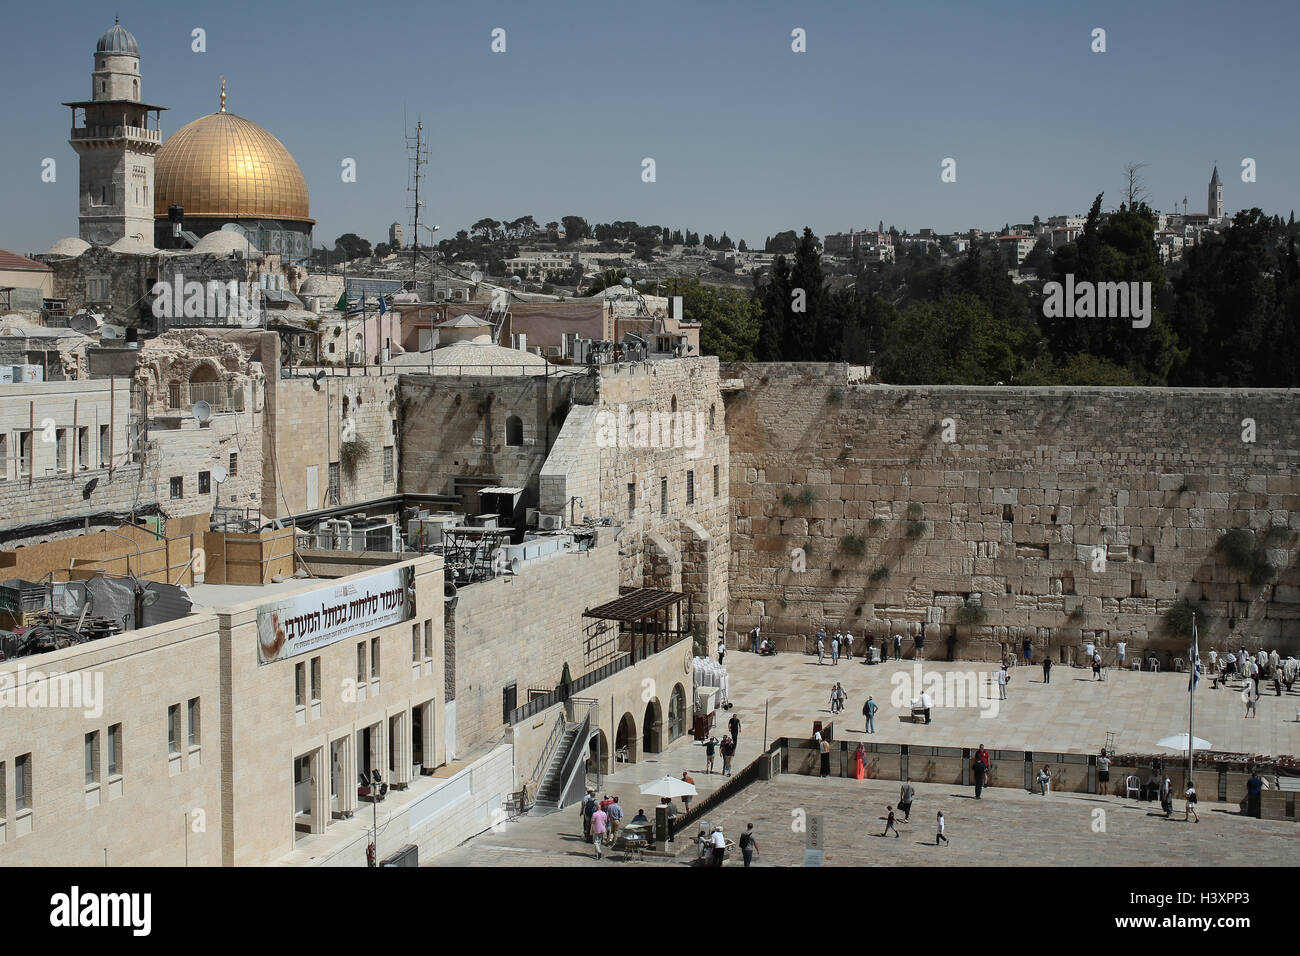 A view of the Dome of the Rock shrine and the Western (wailing) wall in the old city of Jerusalem. From a series - Stock Image